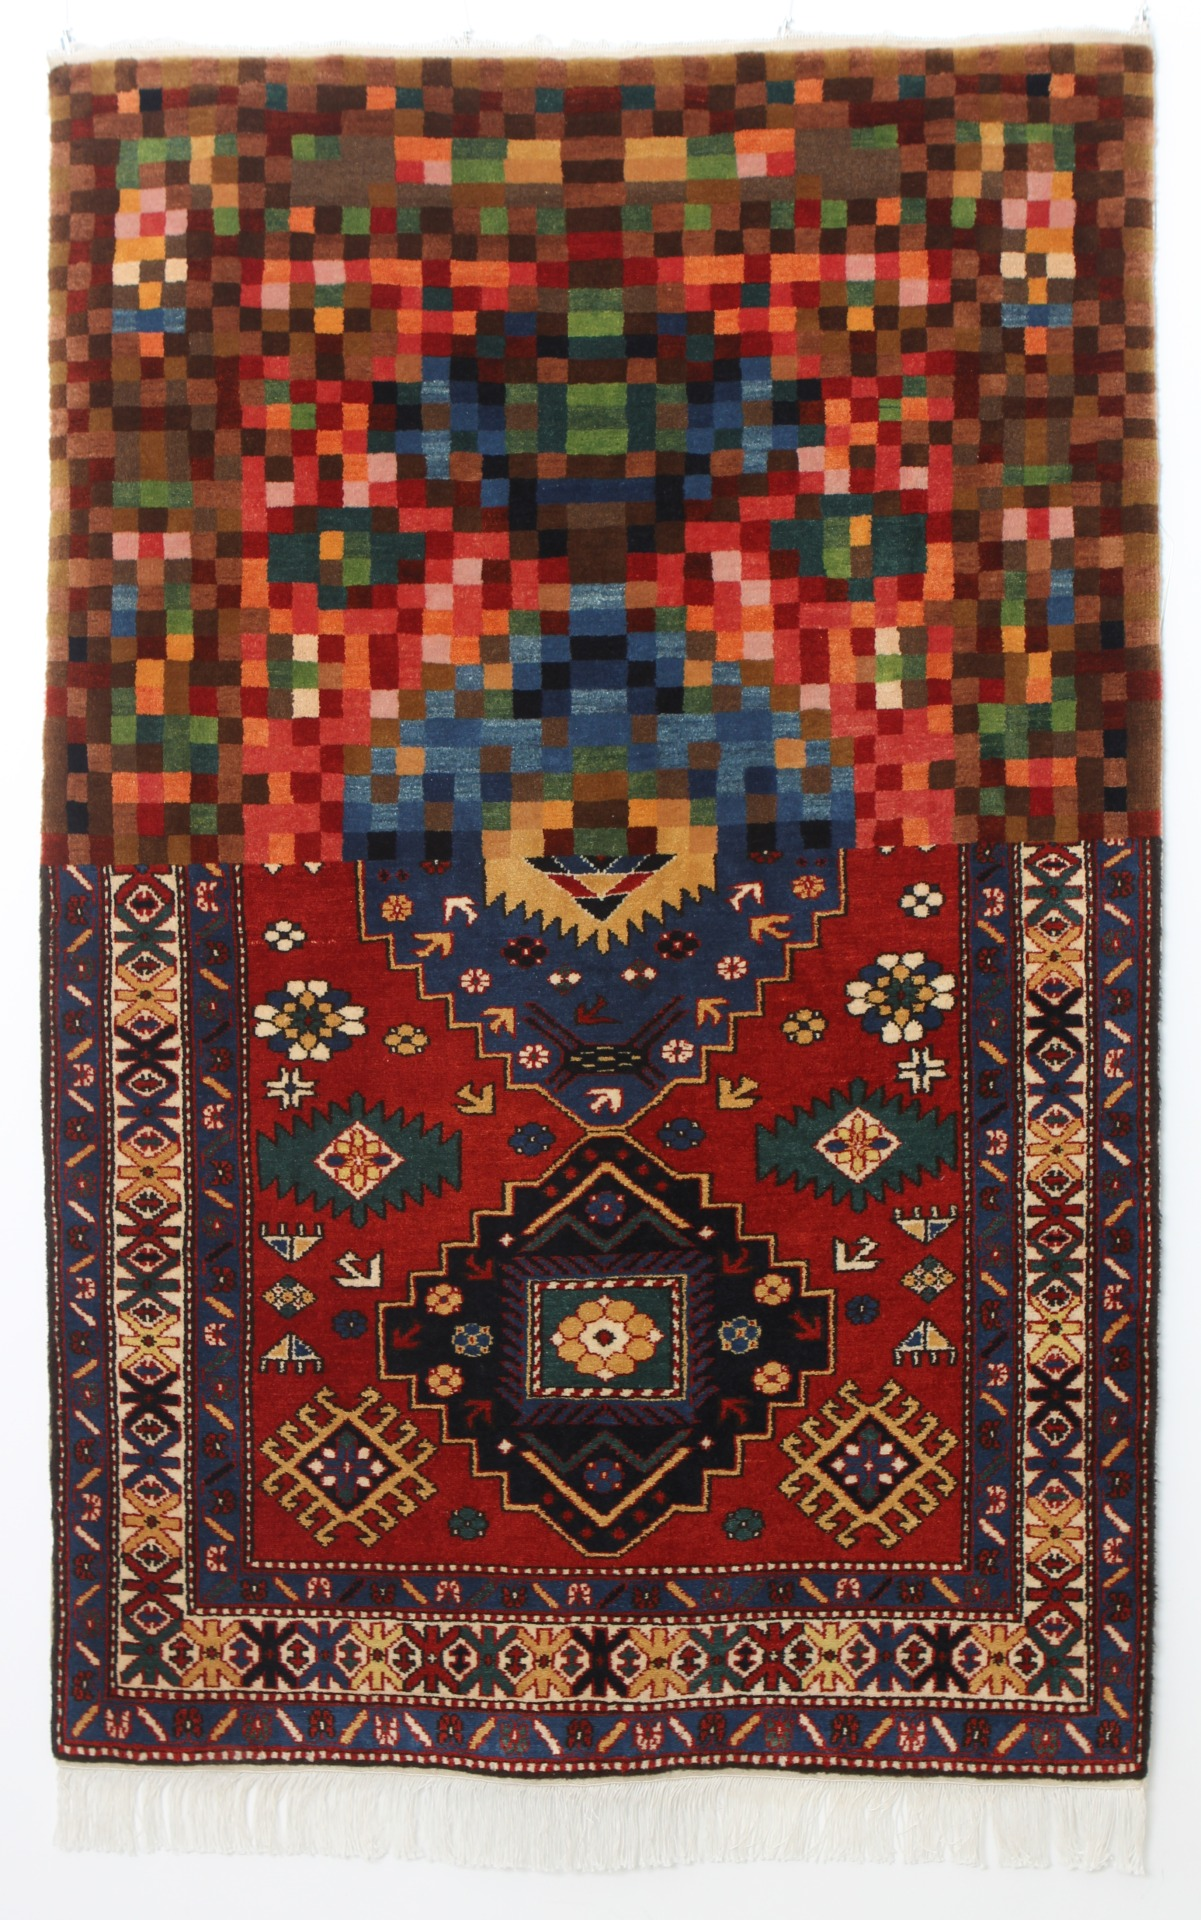 Tradition in Pixel - Handmade Woolen Carpet by Faig Ahmed